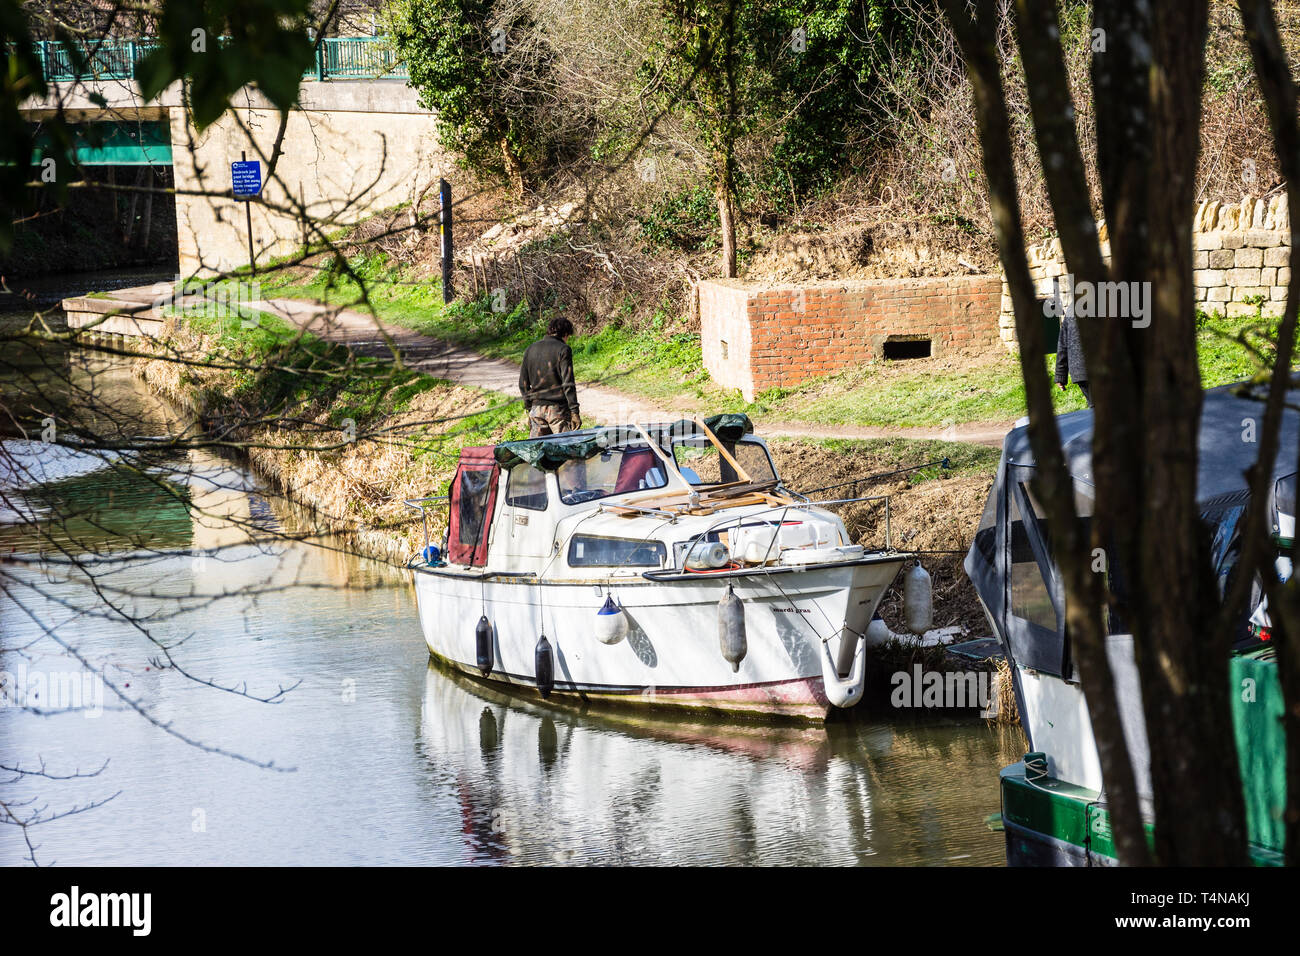 A man stood behind a small old and worn river cruiser boat moored on the Kennet and Avon canal in front of old world war 2 pill box. Stock Photo